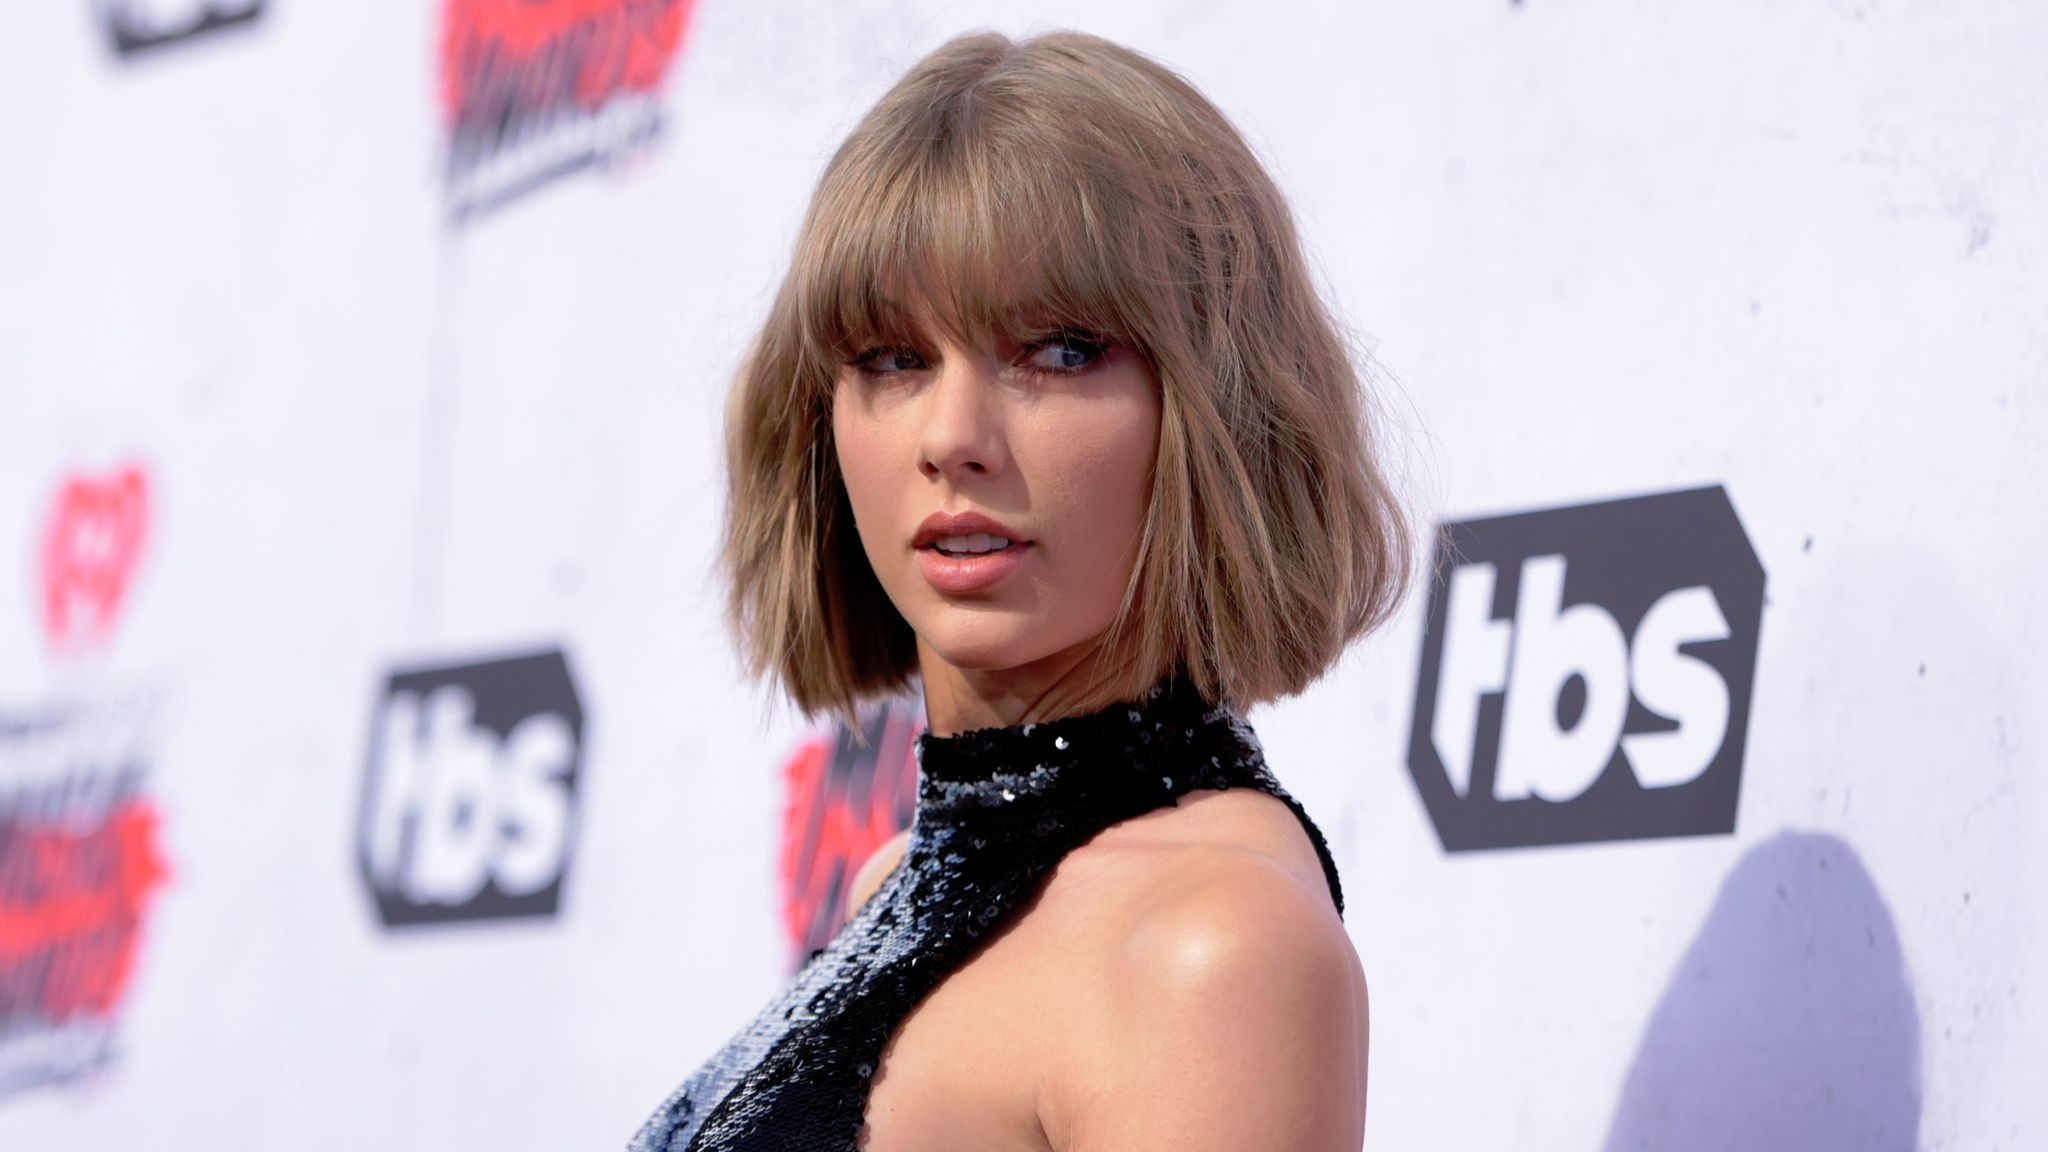 Ex-DJ suing Taylor Swift had been fired from radio jobs before